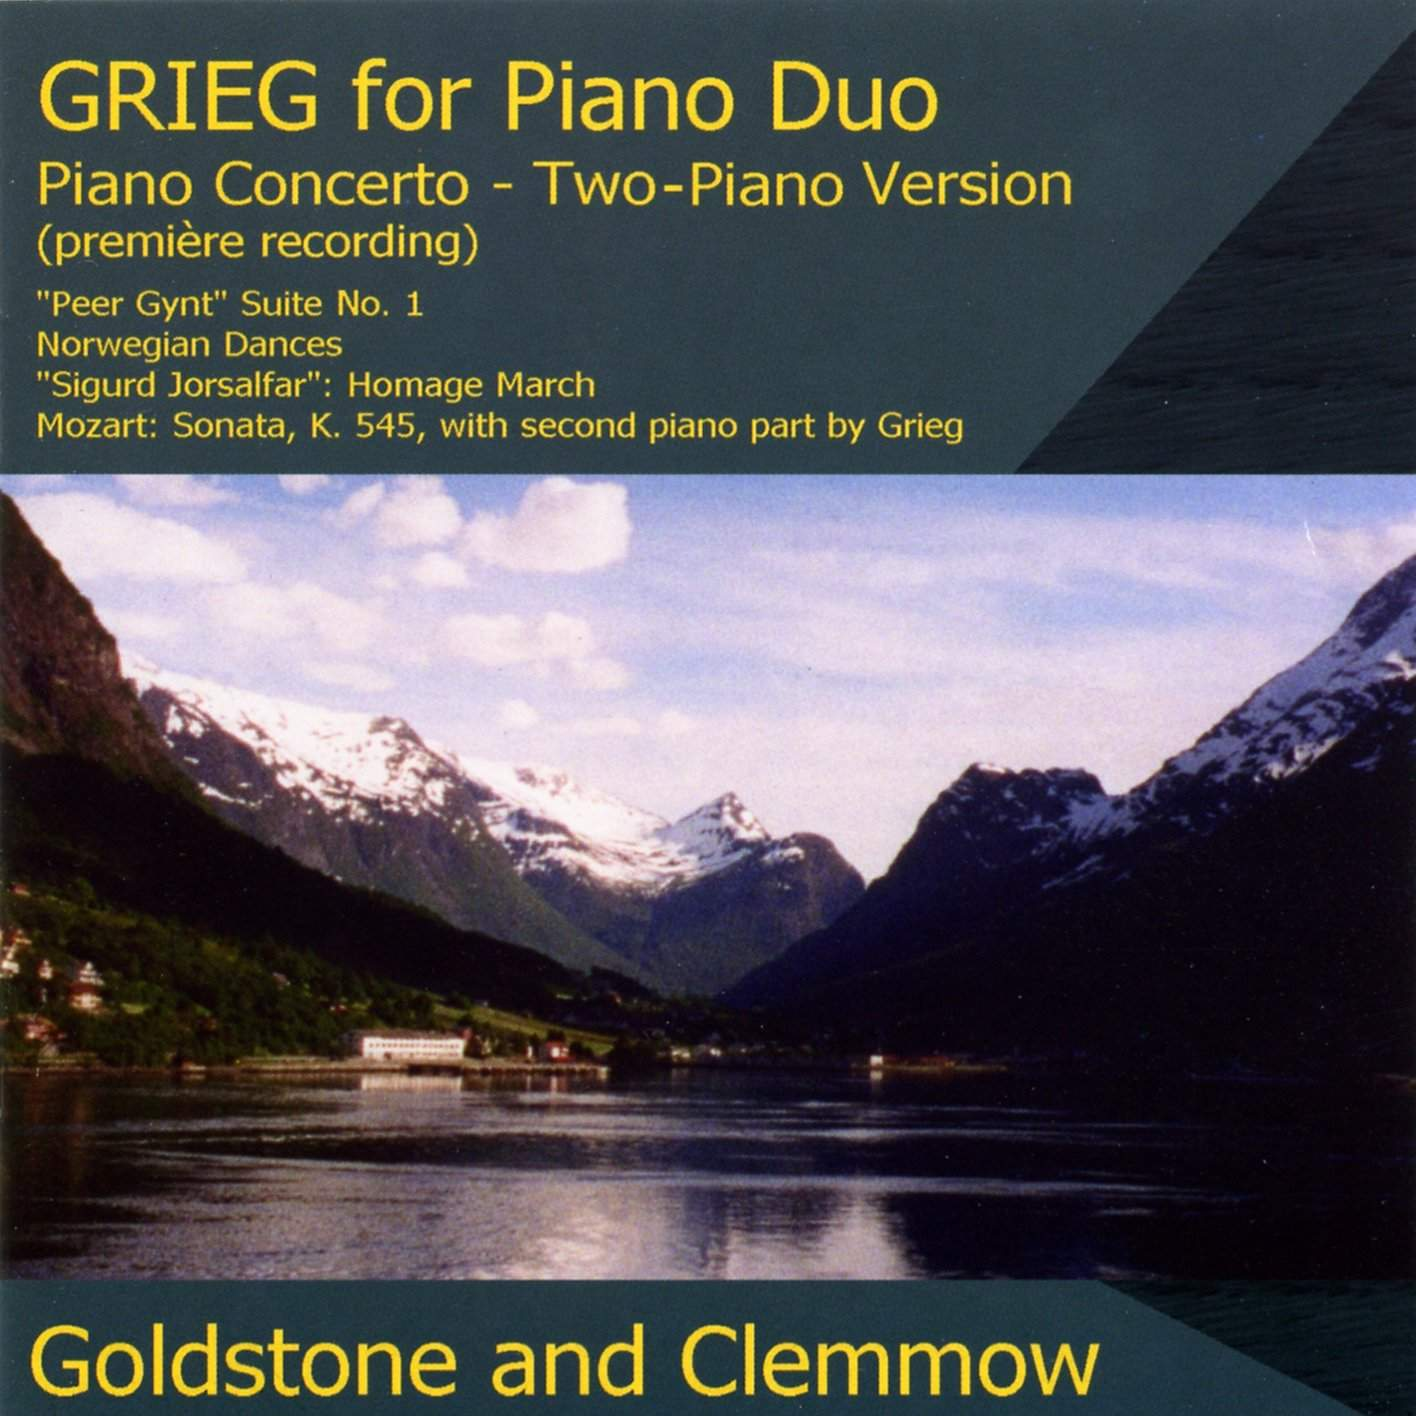 Grieg for Piano Duo